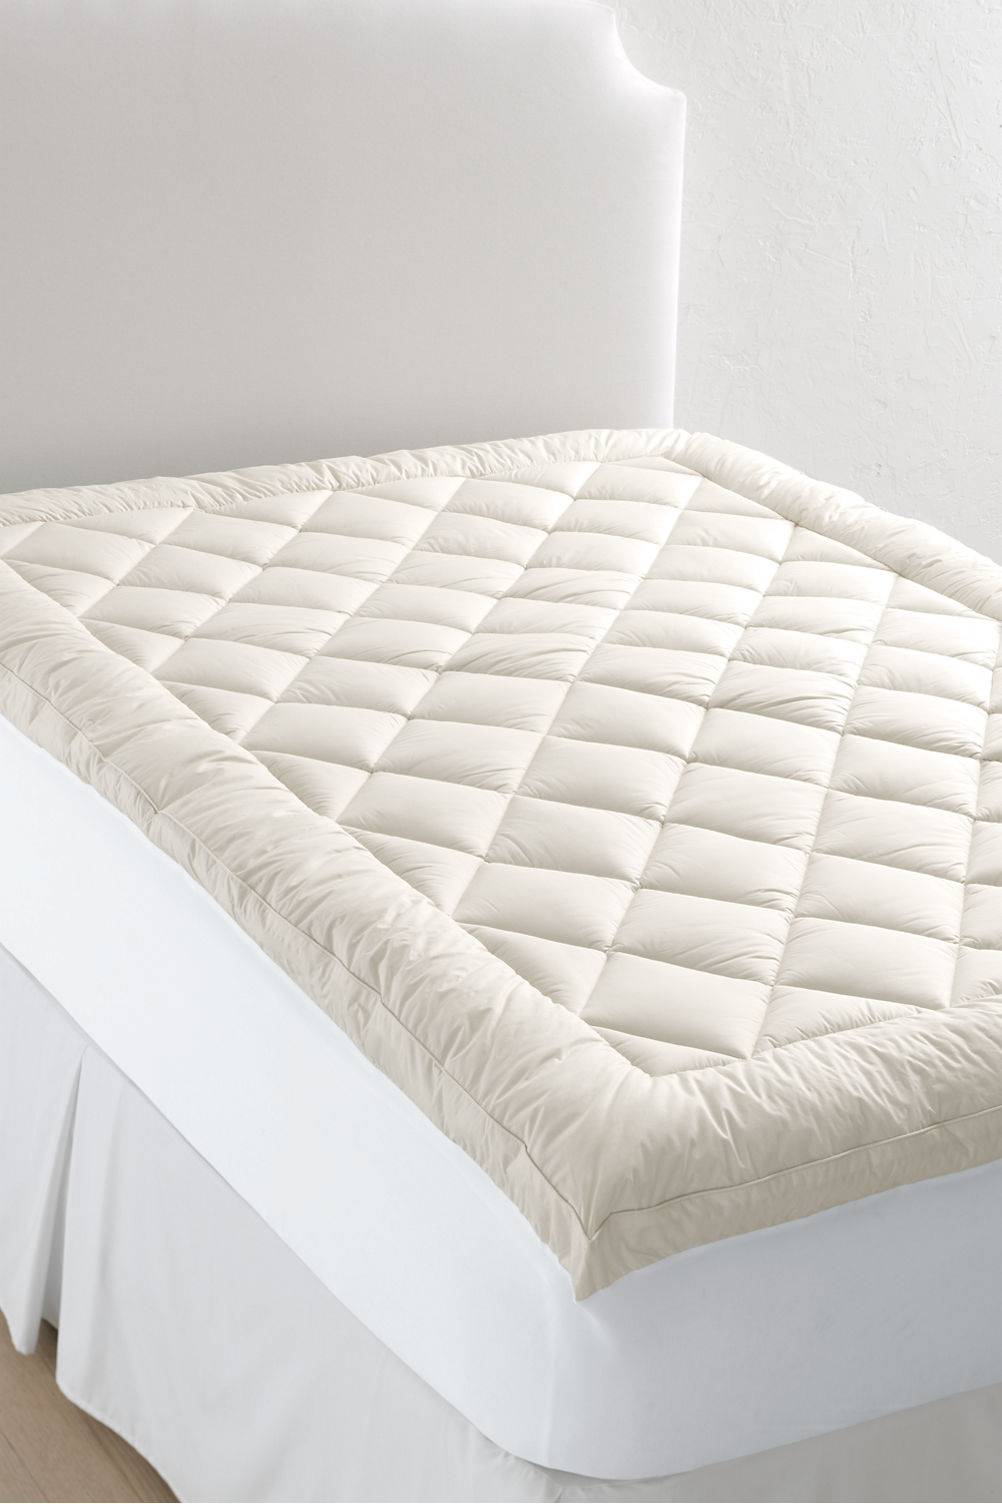 organic cotton mattress pad from lands end - Organic Cotton Mattress